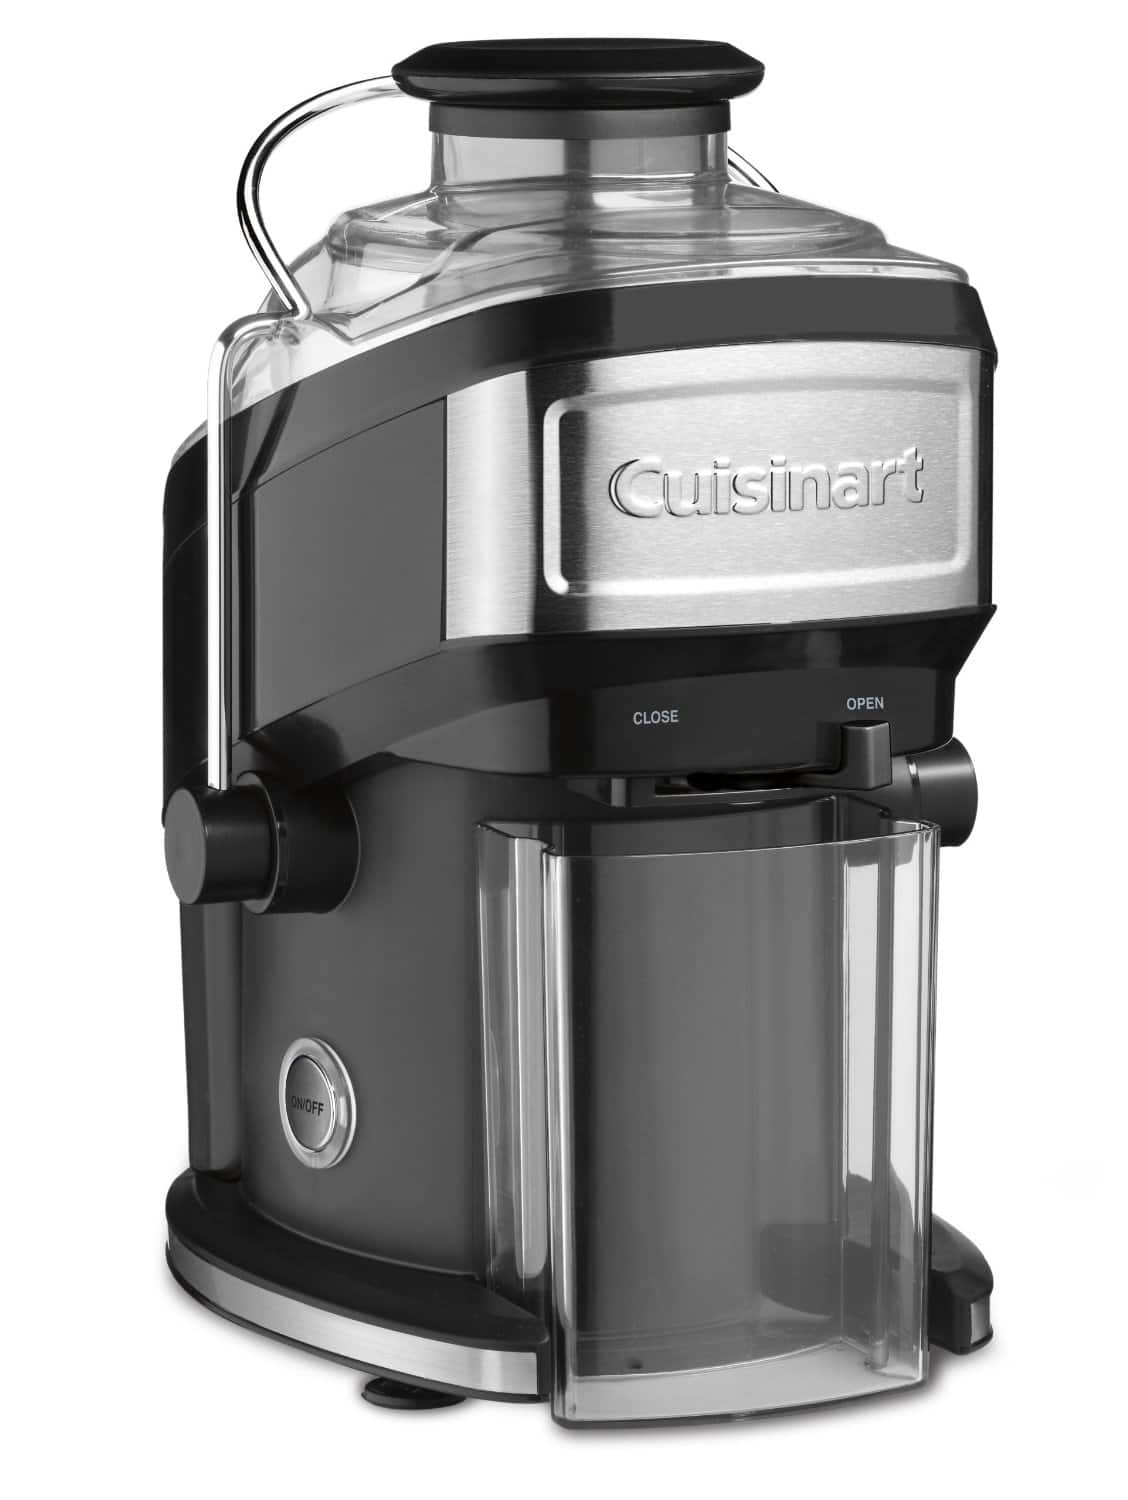 Cuisinart CJE-500 Compact Juice Extractor $44.99 + Free Shipping